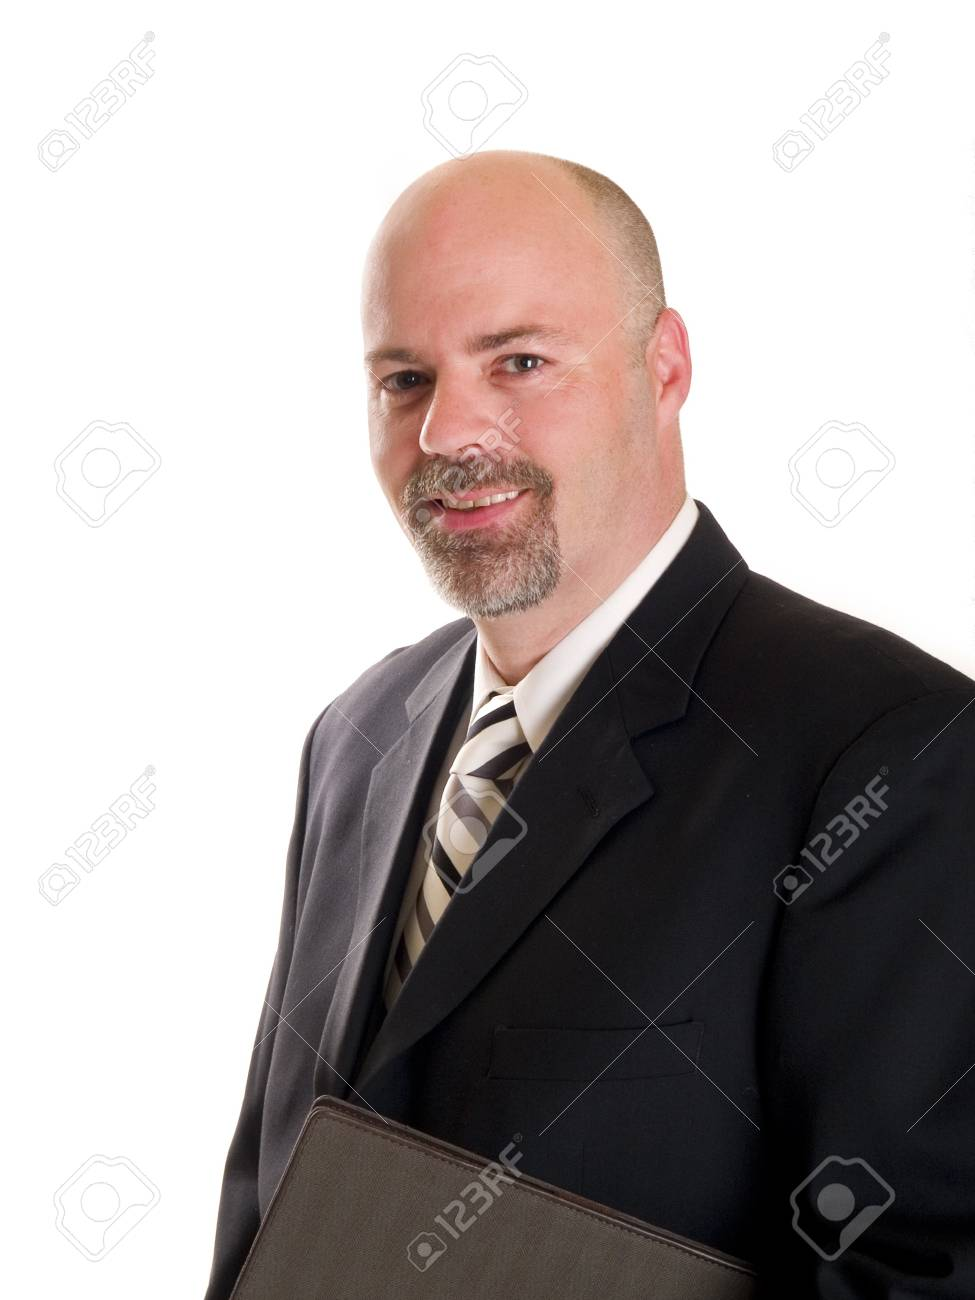 Stock photo of a well dressed businessman holding a notebook, isolated on white. Stock Photo - 8081119